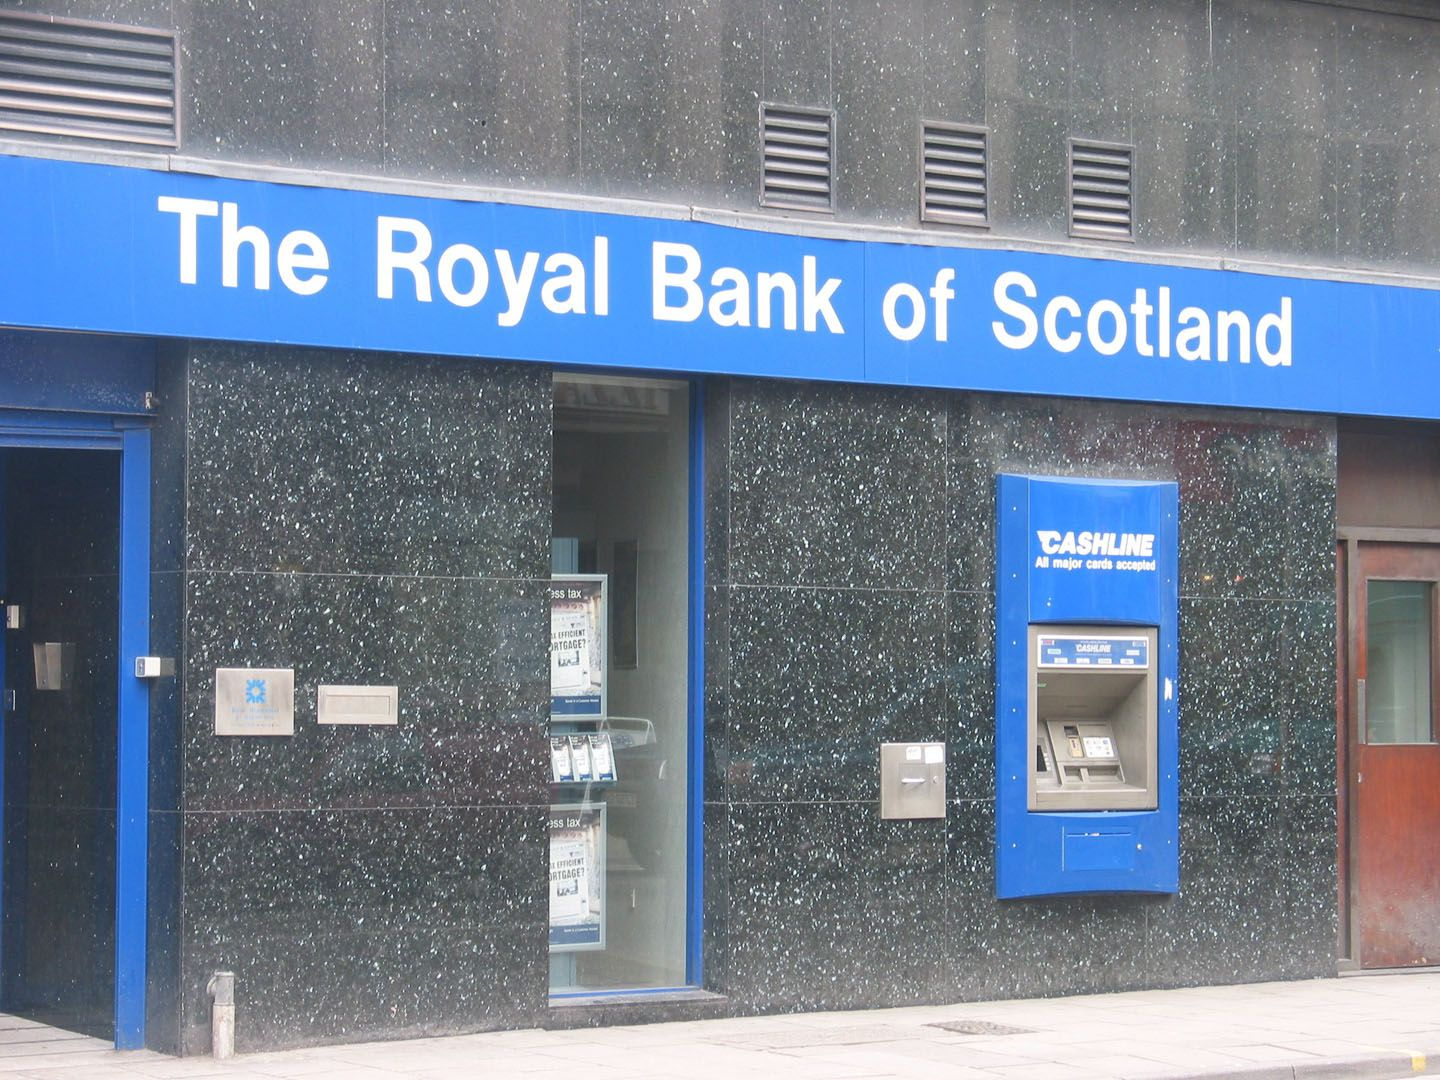 Bank Royal Bank Of Scotland Bank Buildings And Landmarks Wallpaper Image Royal Bank Scotland Banking